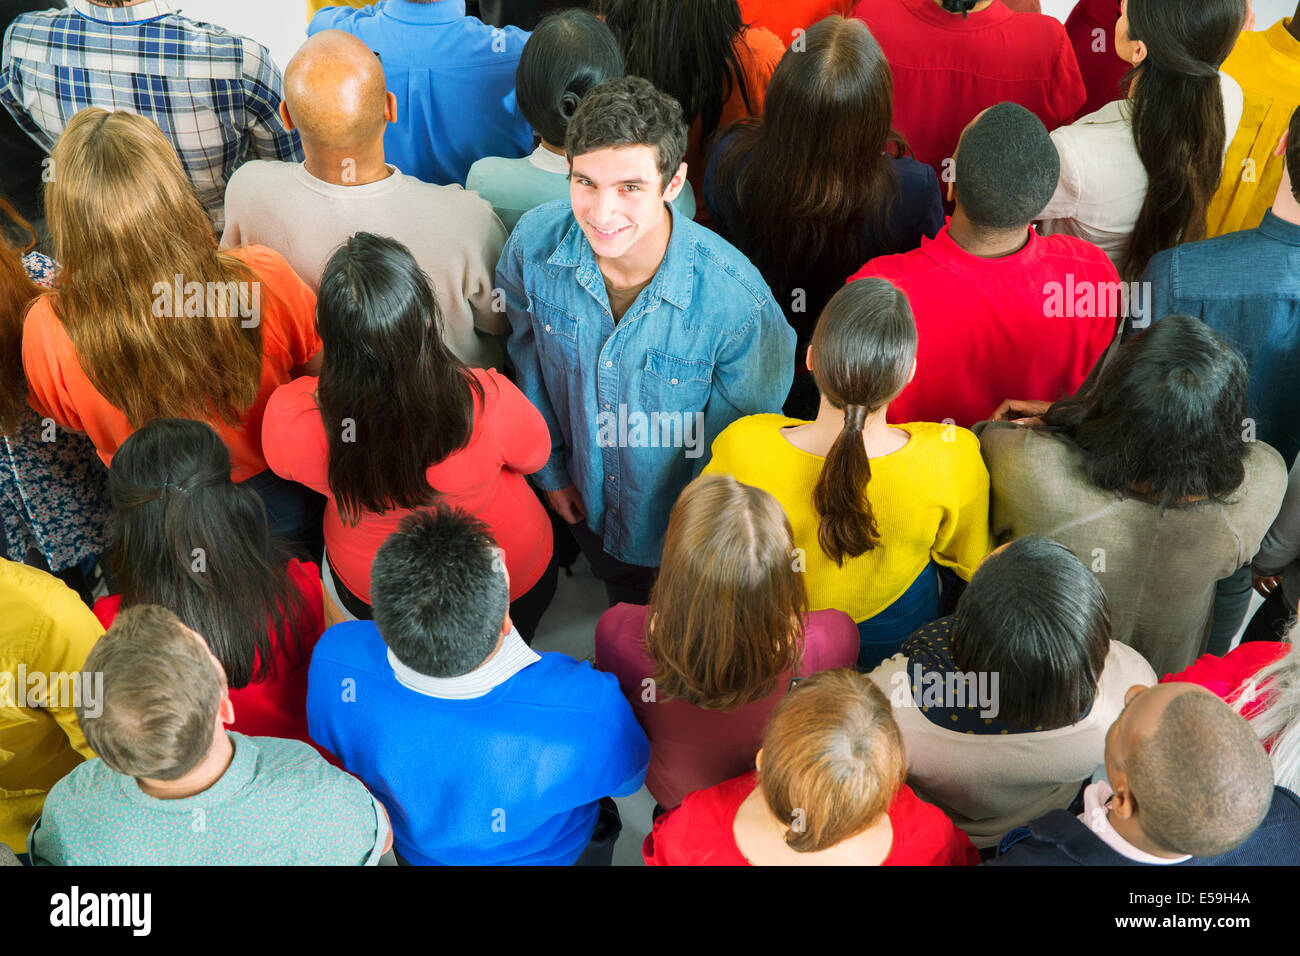 Portrait of smiling man standing out from the crowd - Stock Image